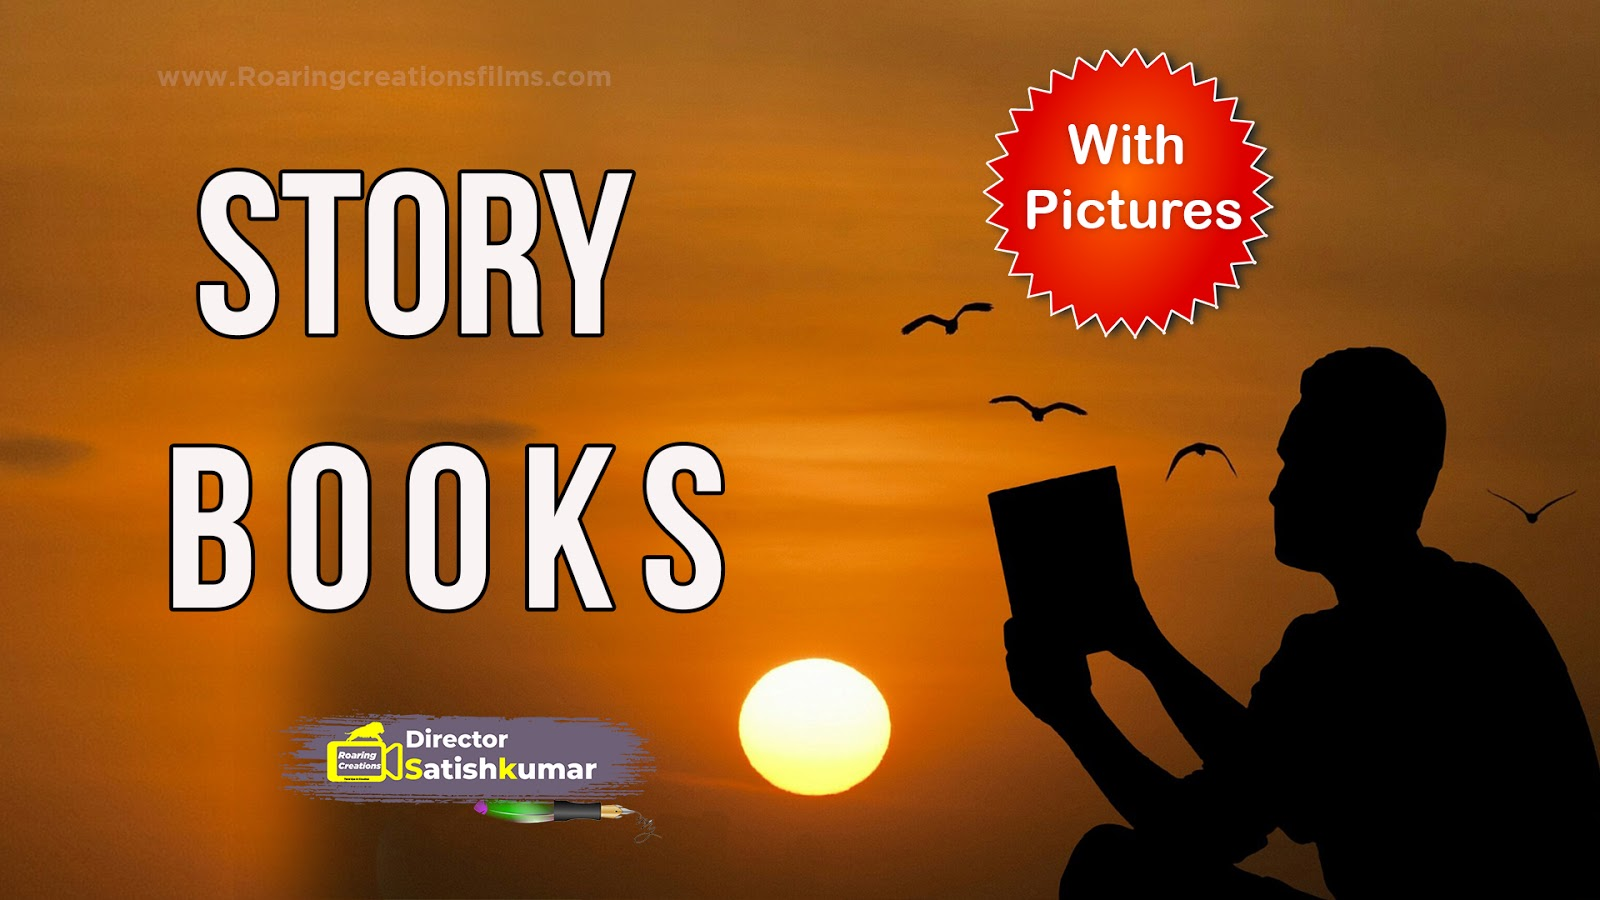 English Story Books - Ebooks in English